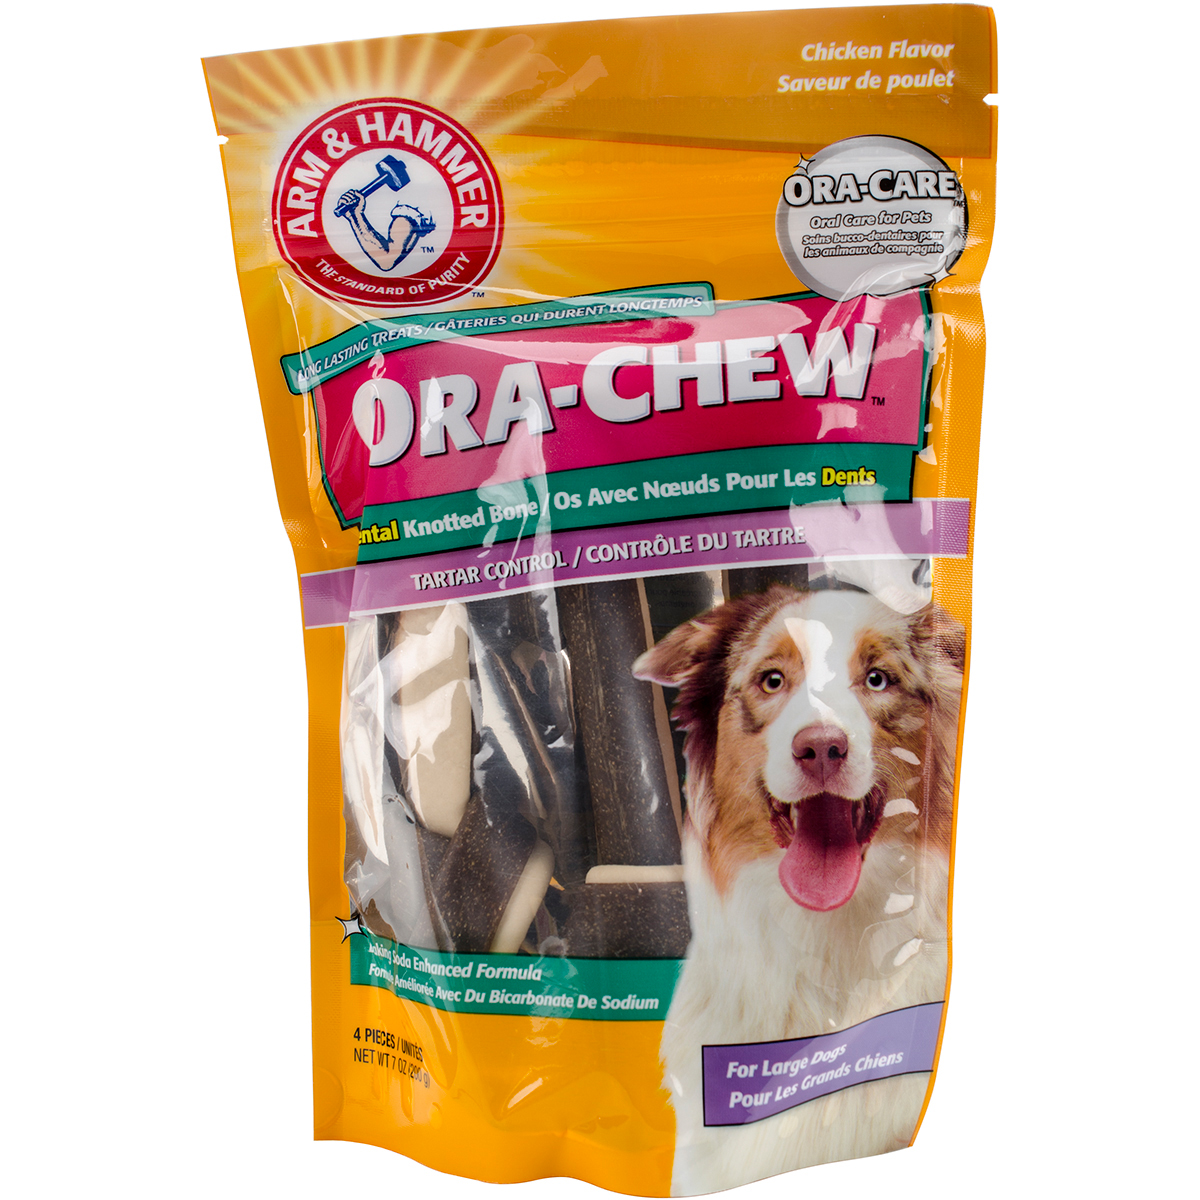 Arm & Hammer Knotted Bone Treat-Large Dog